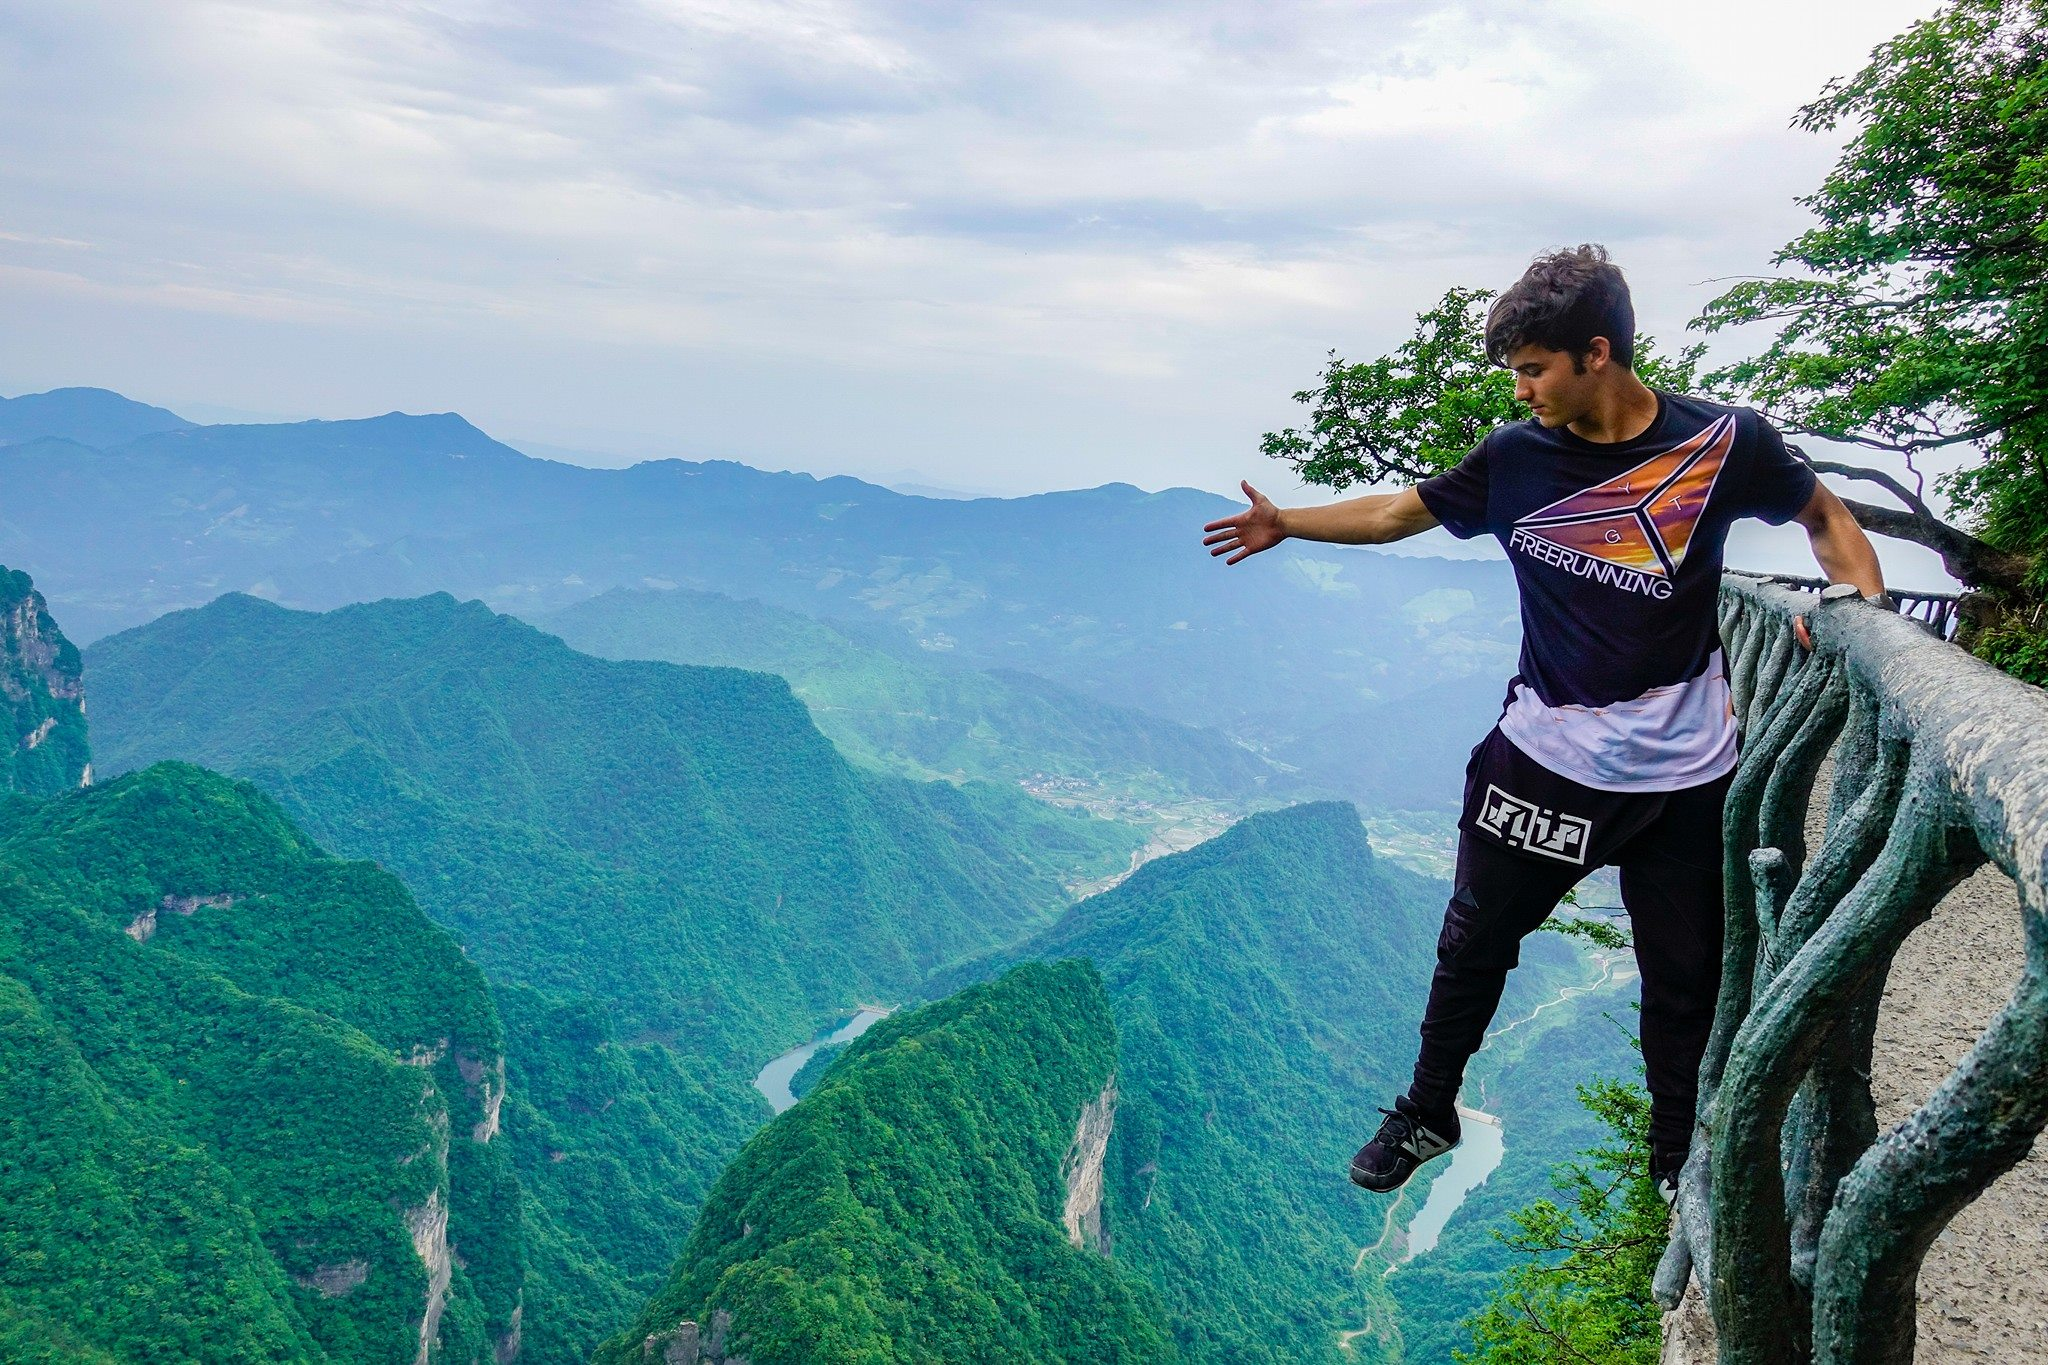 calen chan over tianmen mountains for skyladder video in china